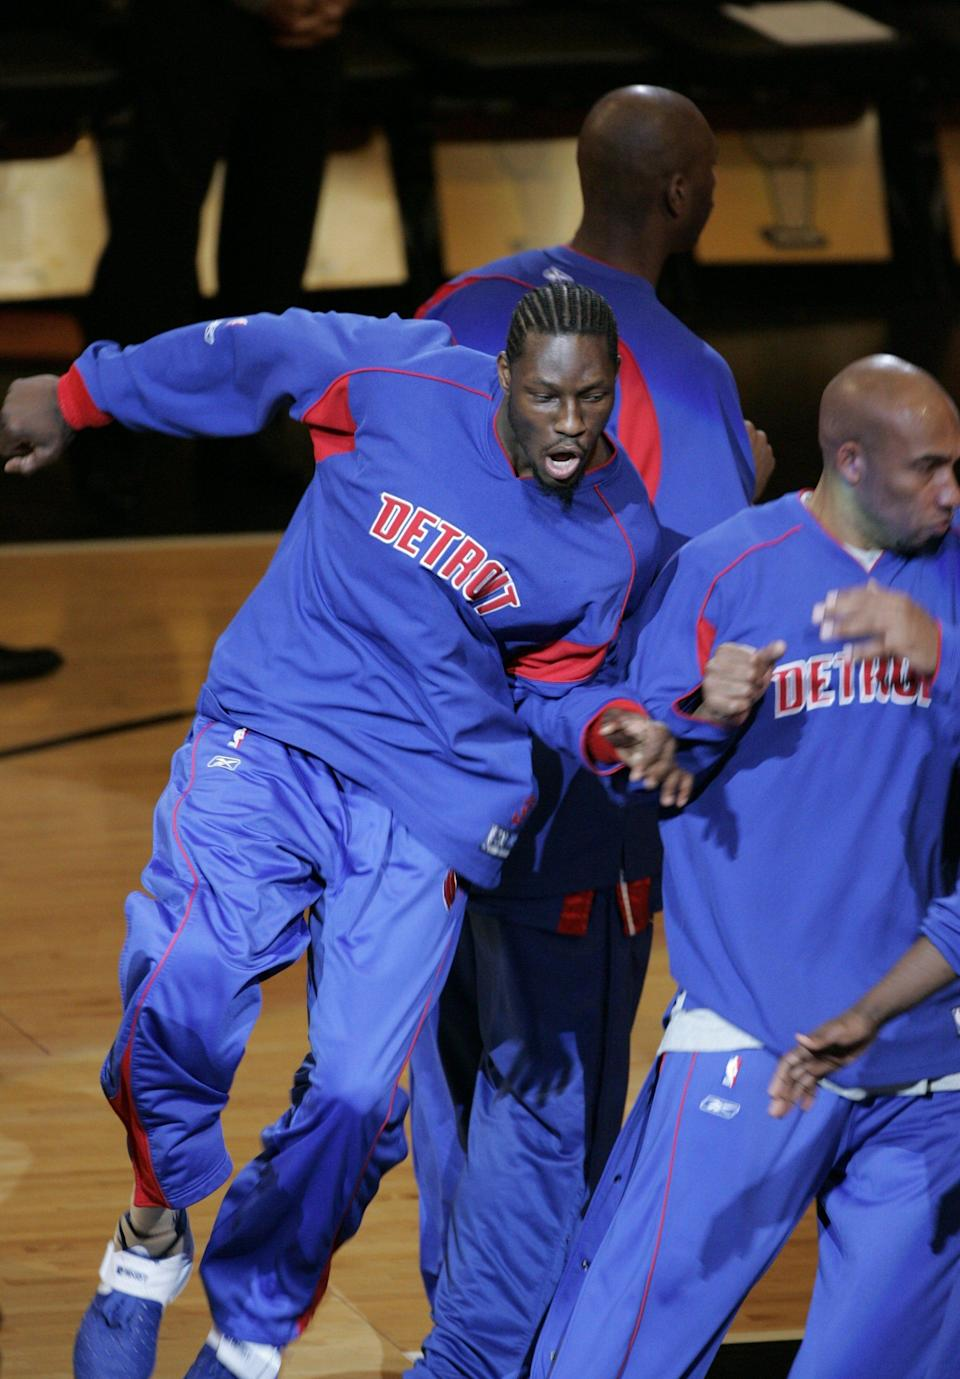 Pistons' Ben Wallace during pregame introductions before facing the Spurs in Game 7 of the NBA Finals on June 23, 2005 at the SBC Center in San Antonio, Texas.